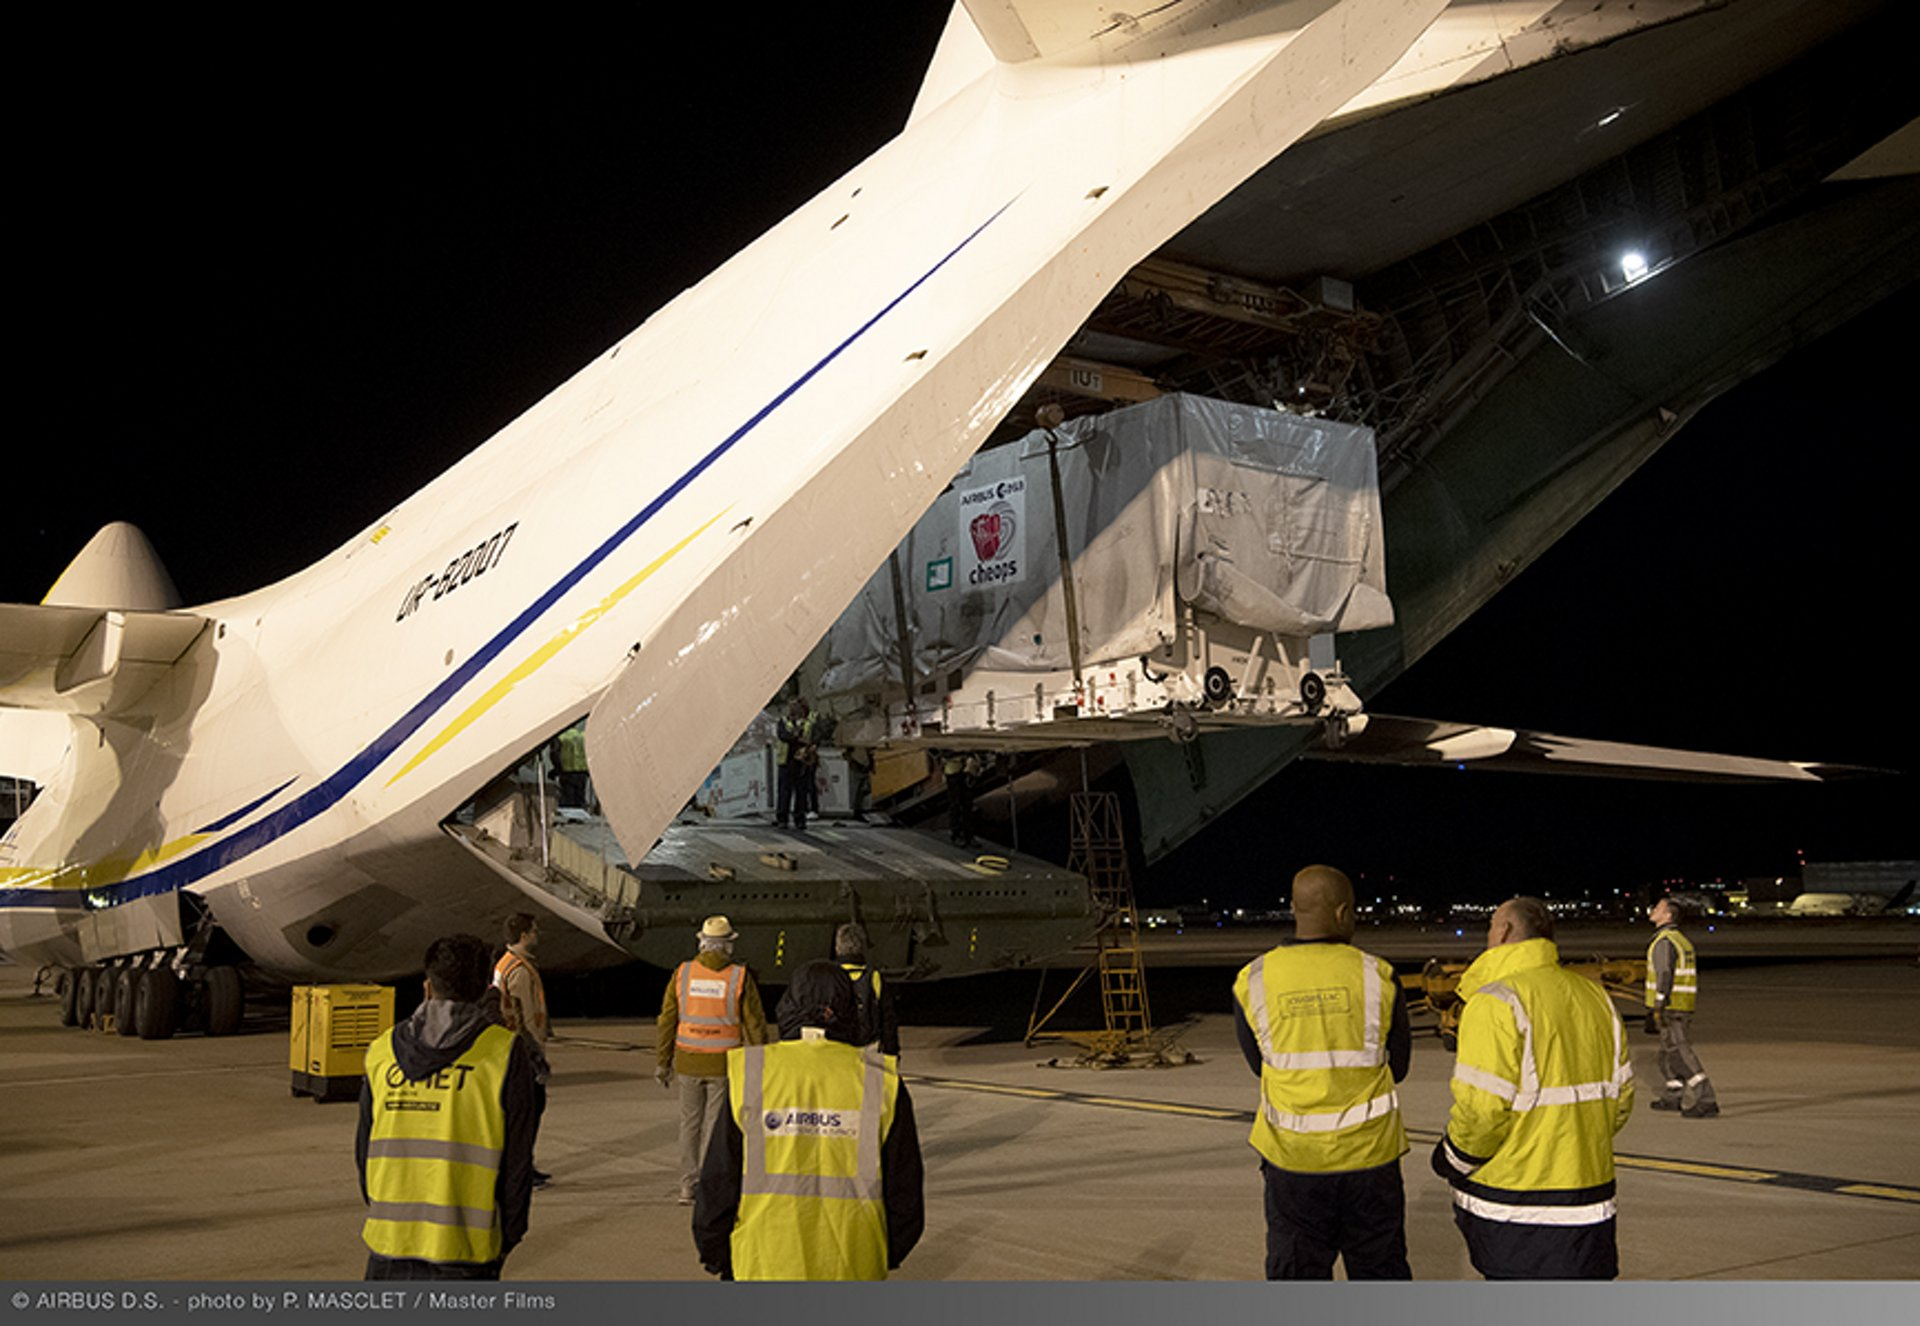 CHEOPS' container is being loaded into the Antonov freighter, along with another Airbus satellite